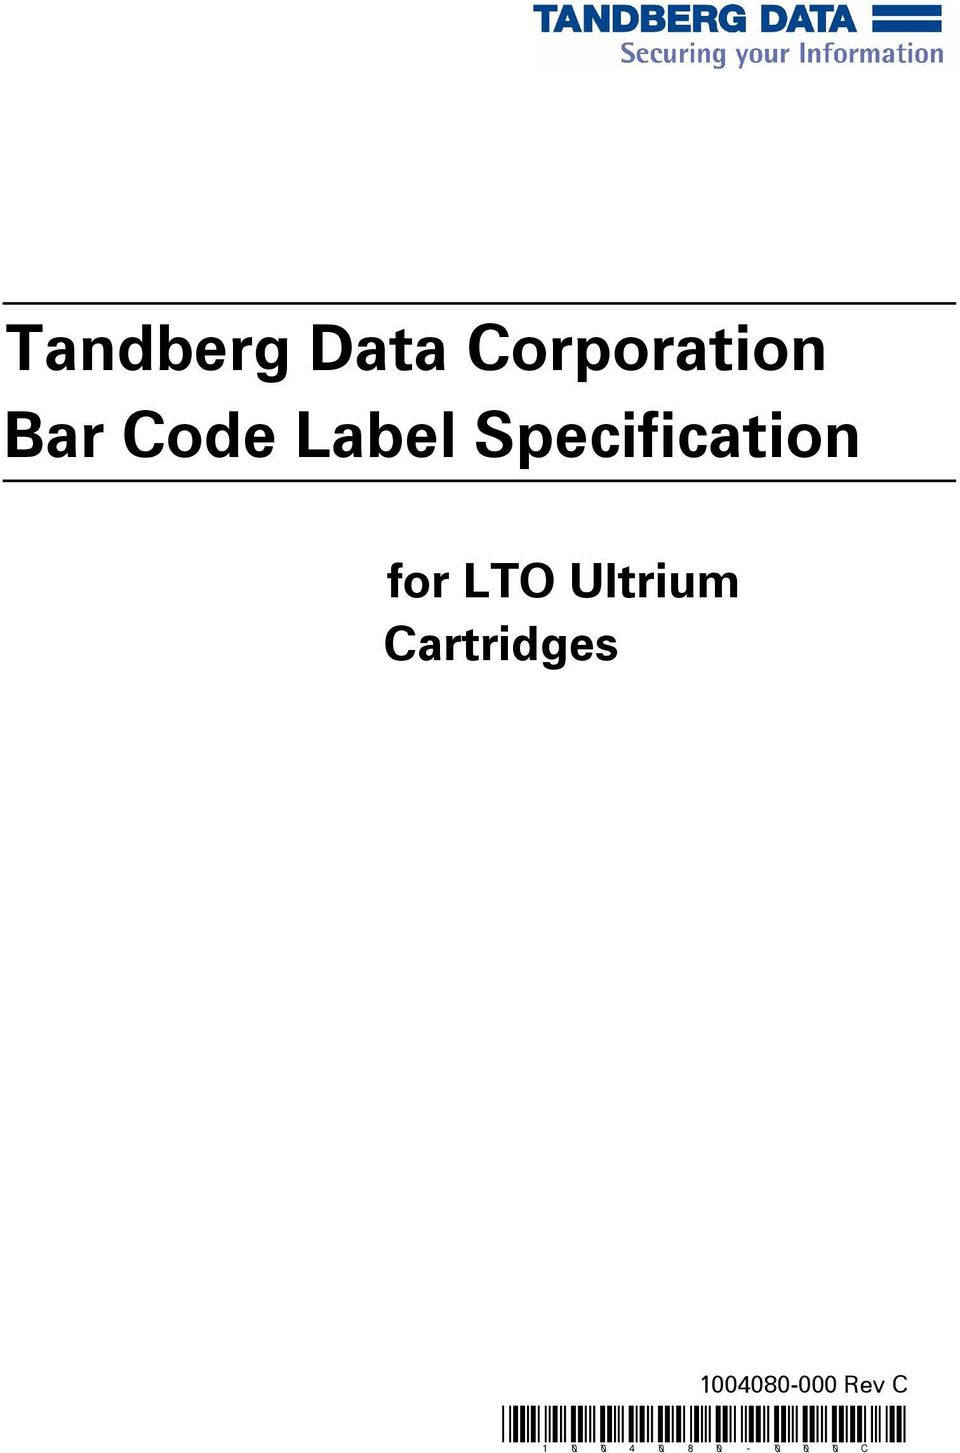 2for LTO Ultrium Cartridges